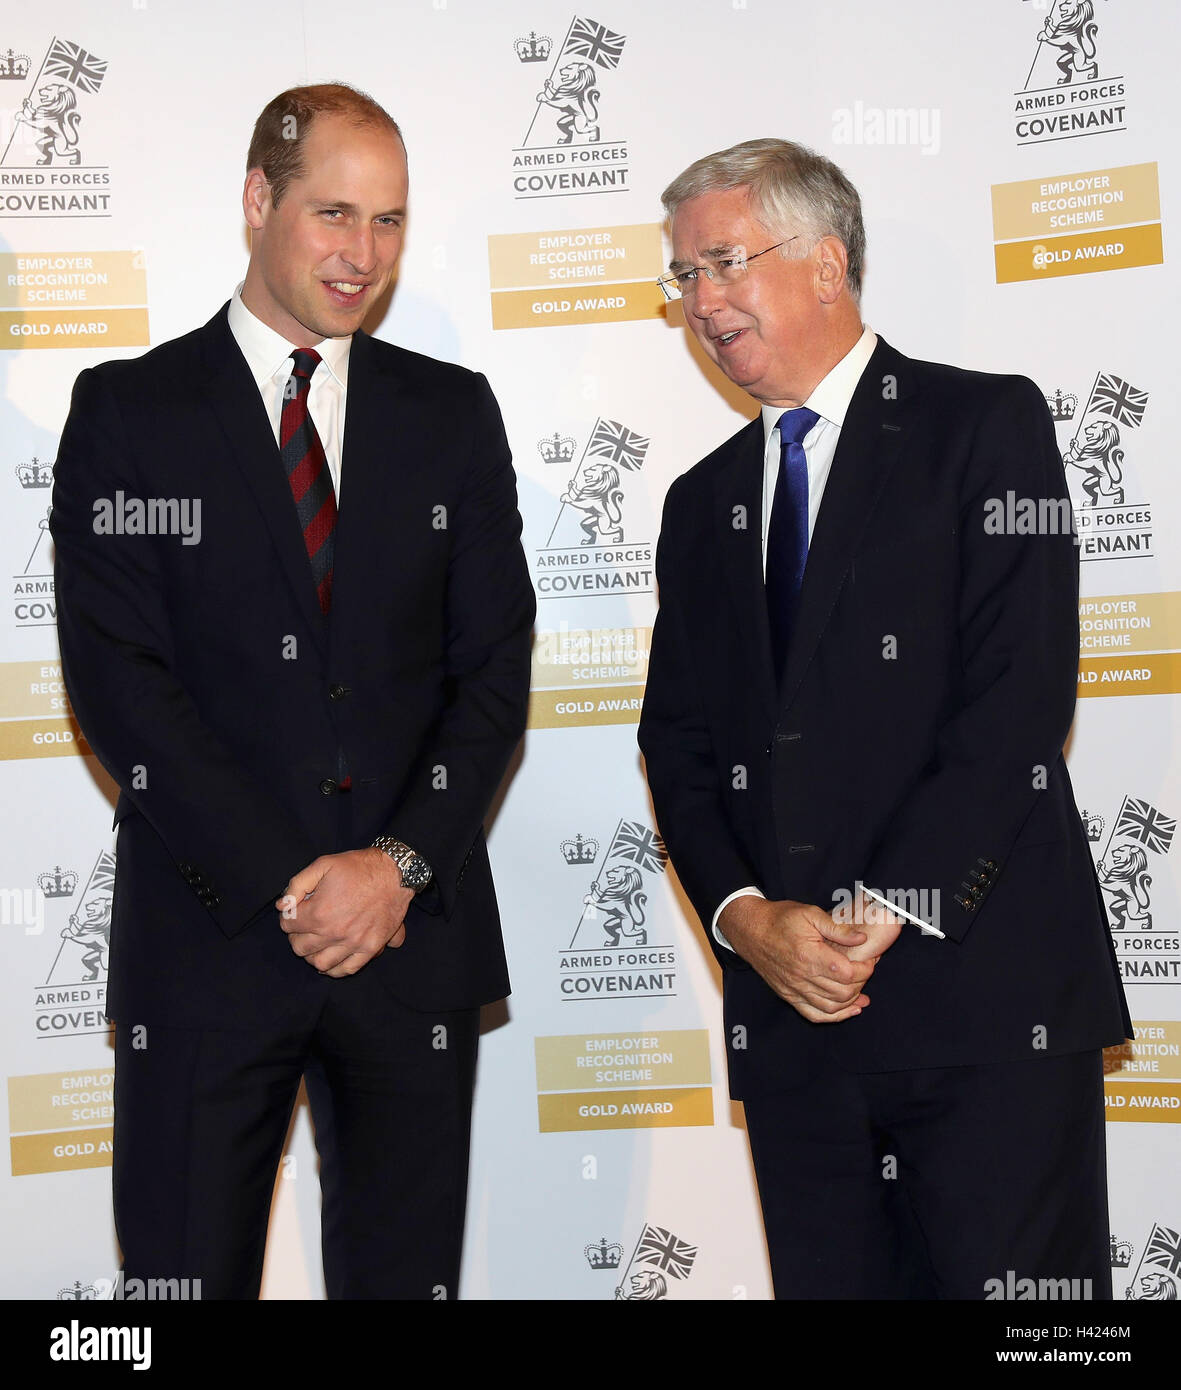 The Duke of Cambridge and Defence Secretary Sir Michael Fallon attend the MOD Employer Recognition Scheme Gold Awards - Stock Image